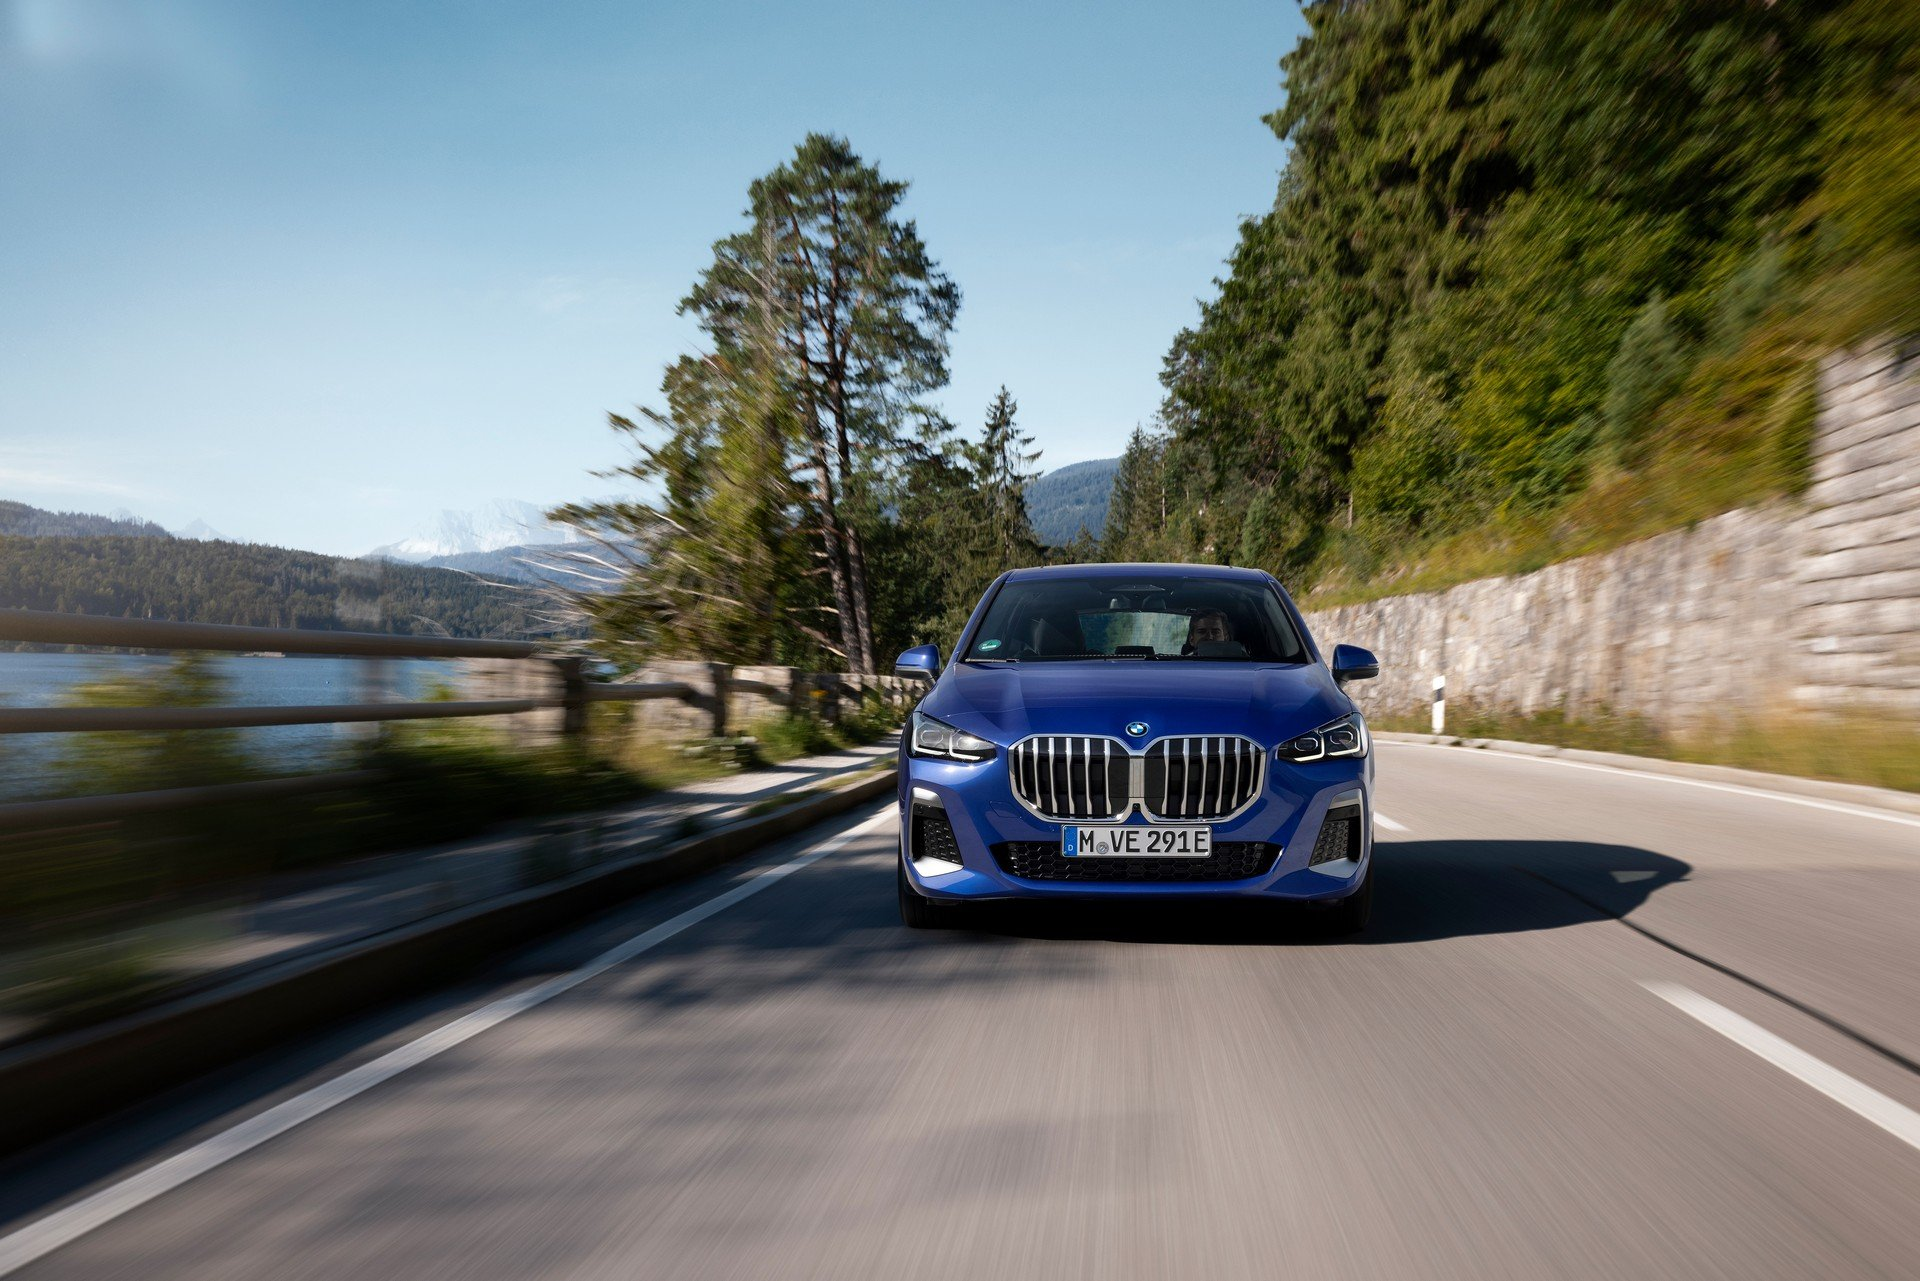 BMW is about to launch a new generation of Active Tourer products, following the success of the 2-Series 10